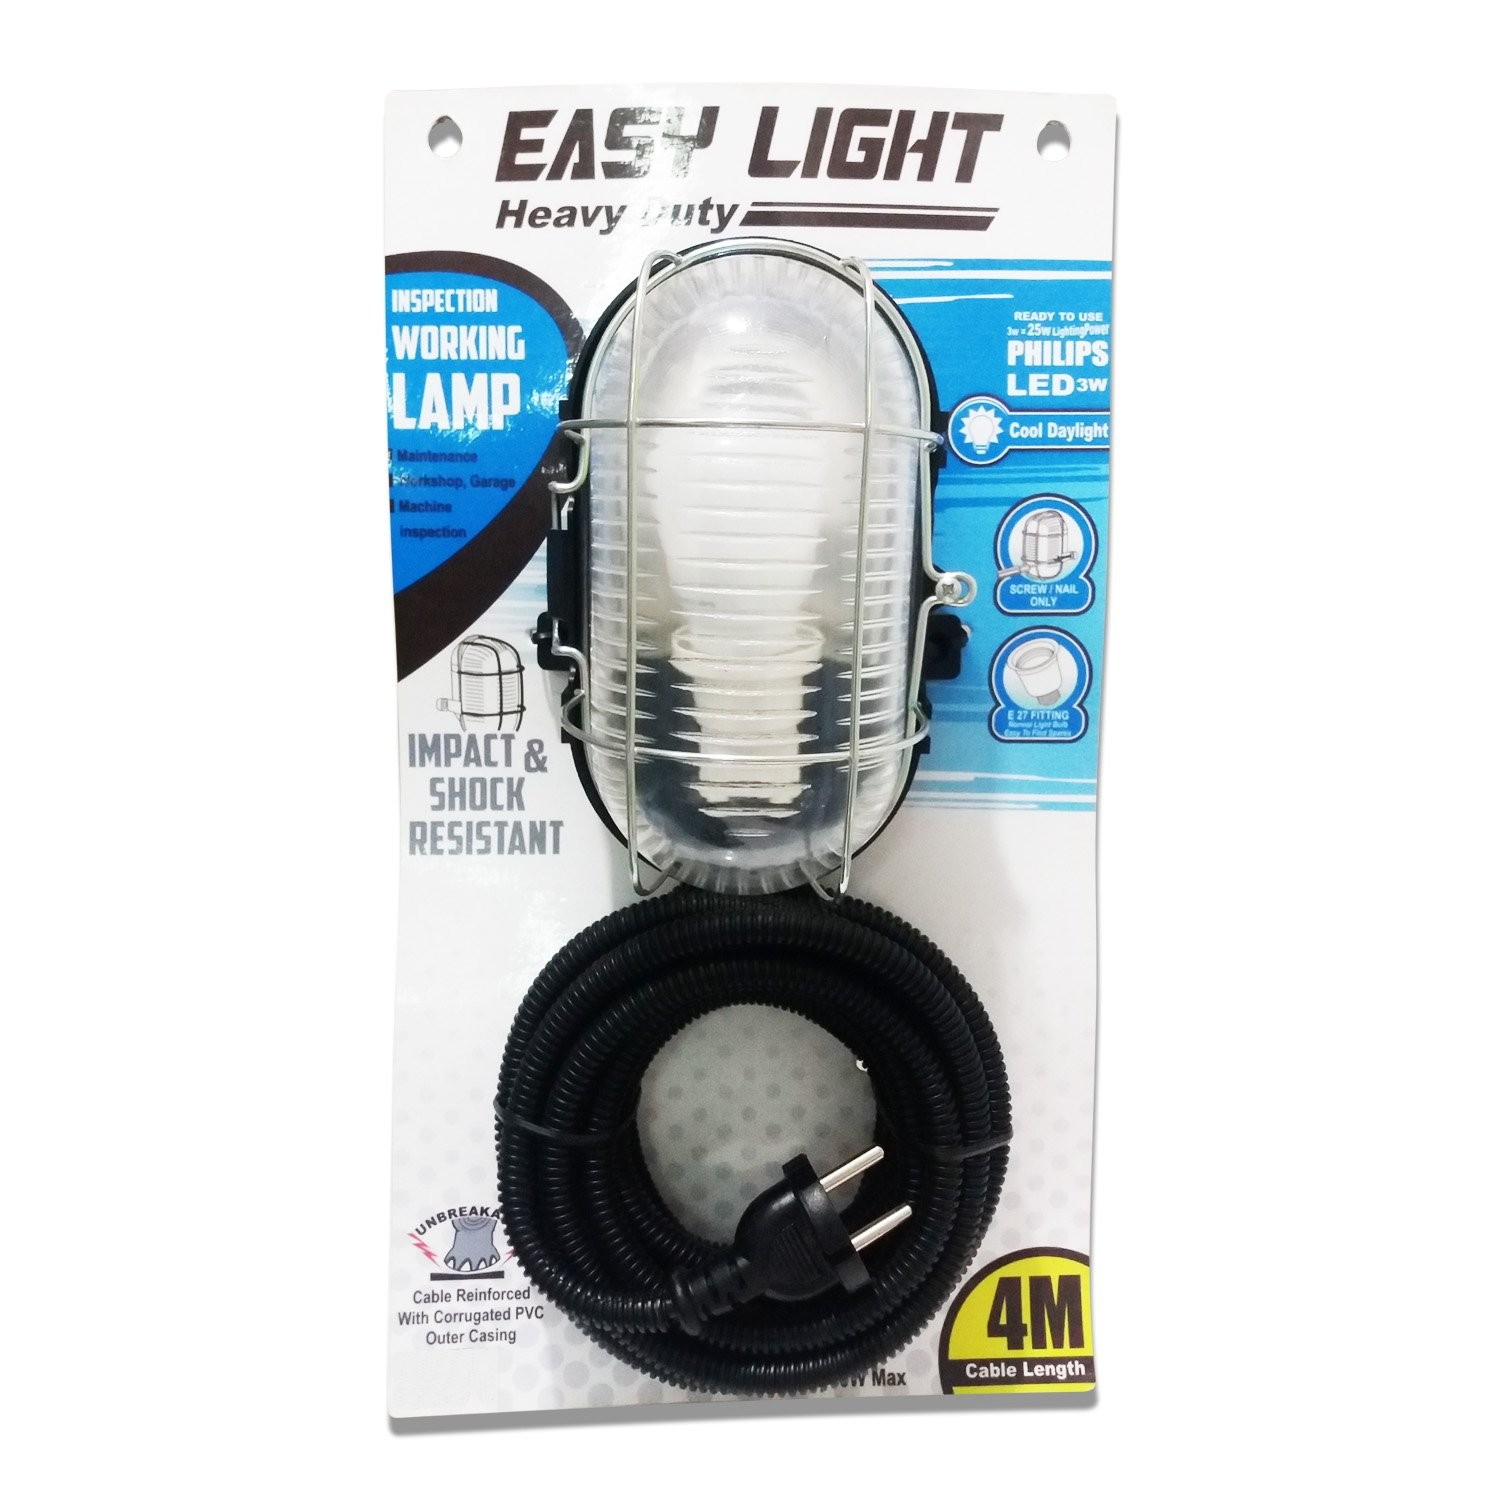 Lampu Siap Pakai LED PHILIPS Easy Light Heavy Duty WorkLamp